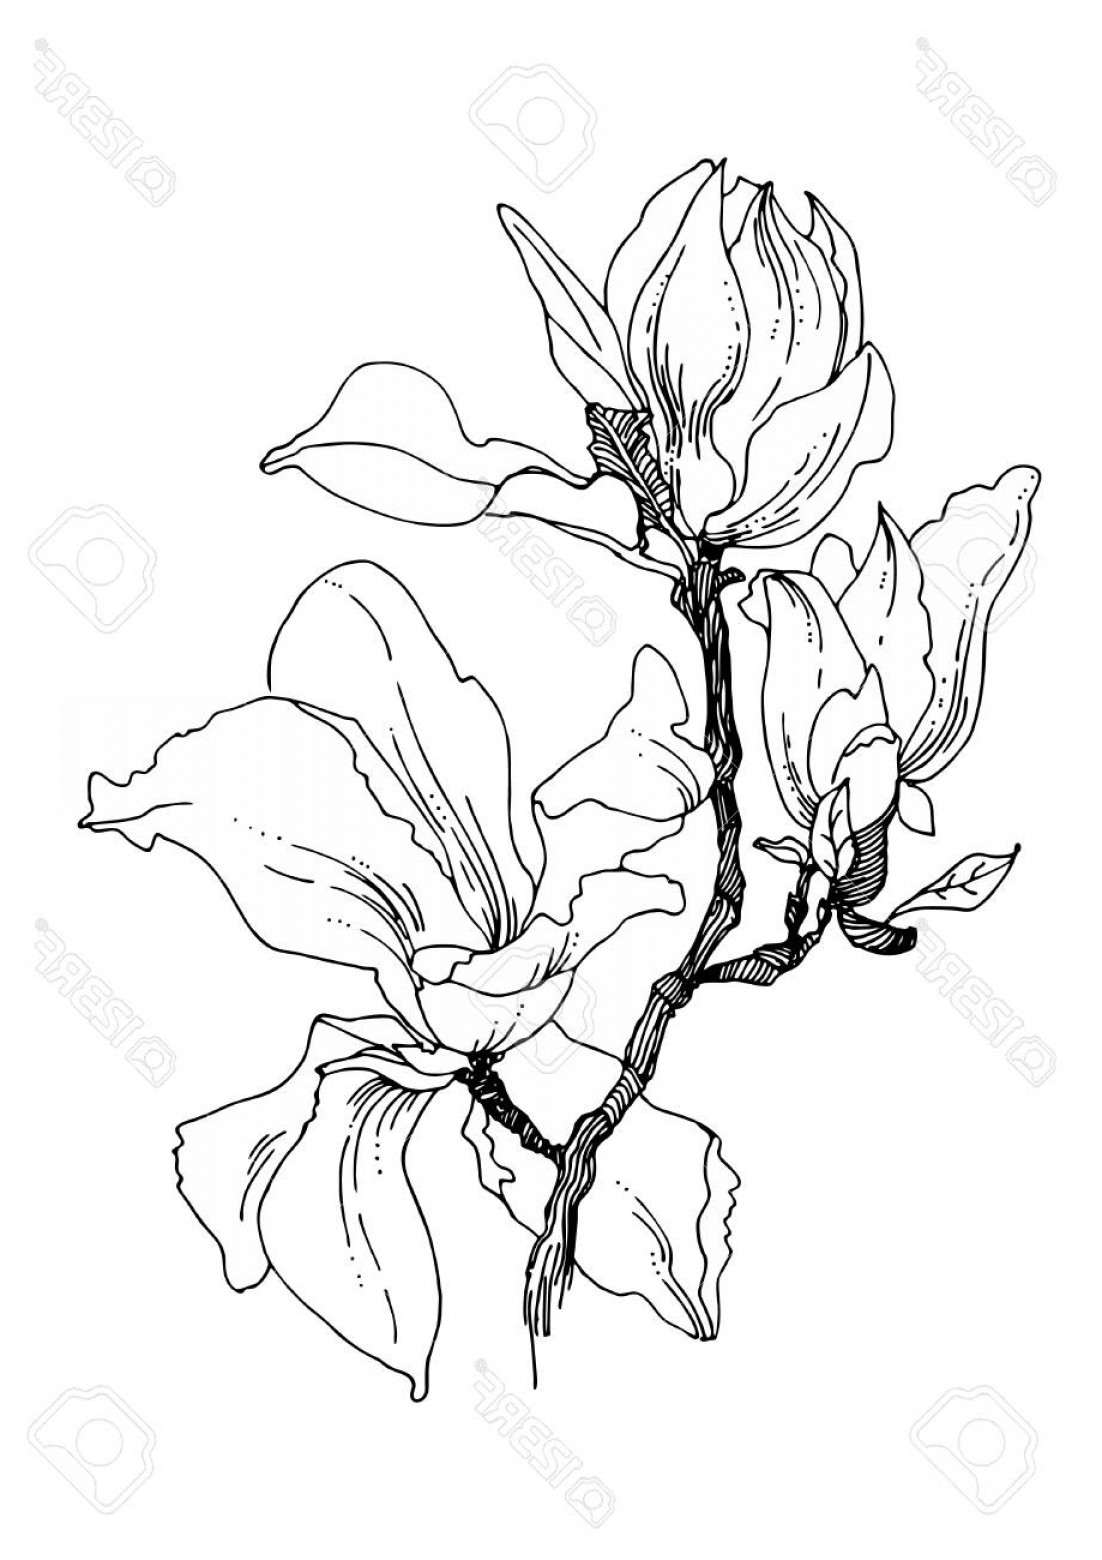 Magnolia Black And White Vector: Photostock Vector Beautiful Big Magnolia Flowers On A Twig Black And White Vector Illustration